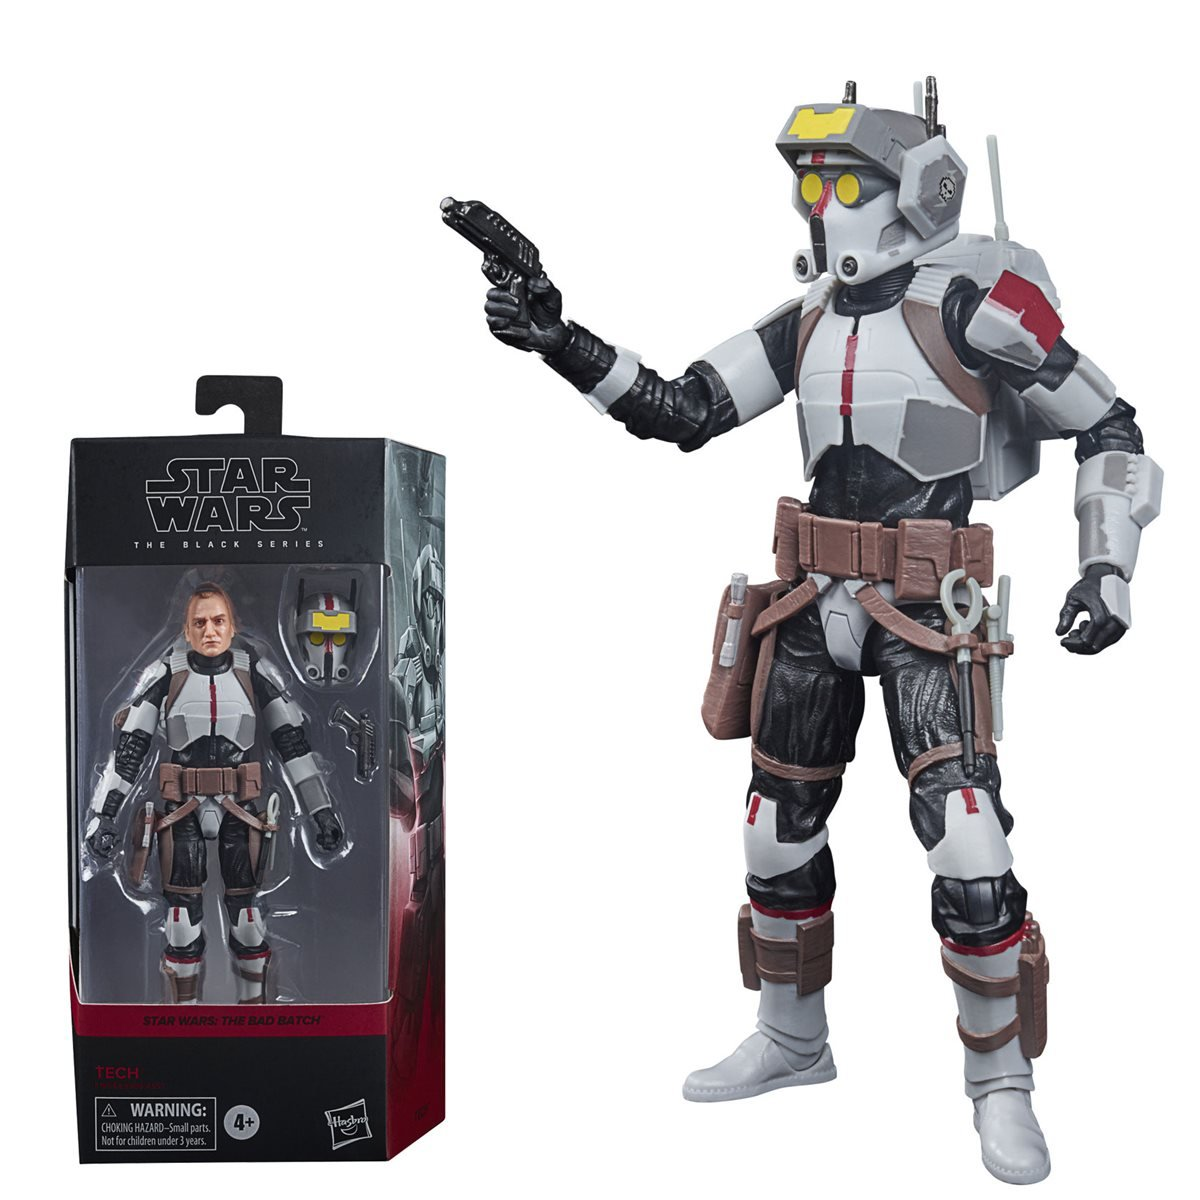 Star Wars The Black Series Tech 6-Inch Action Figure画像